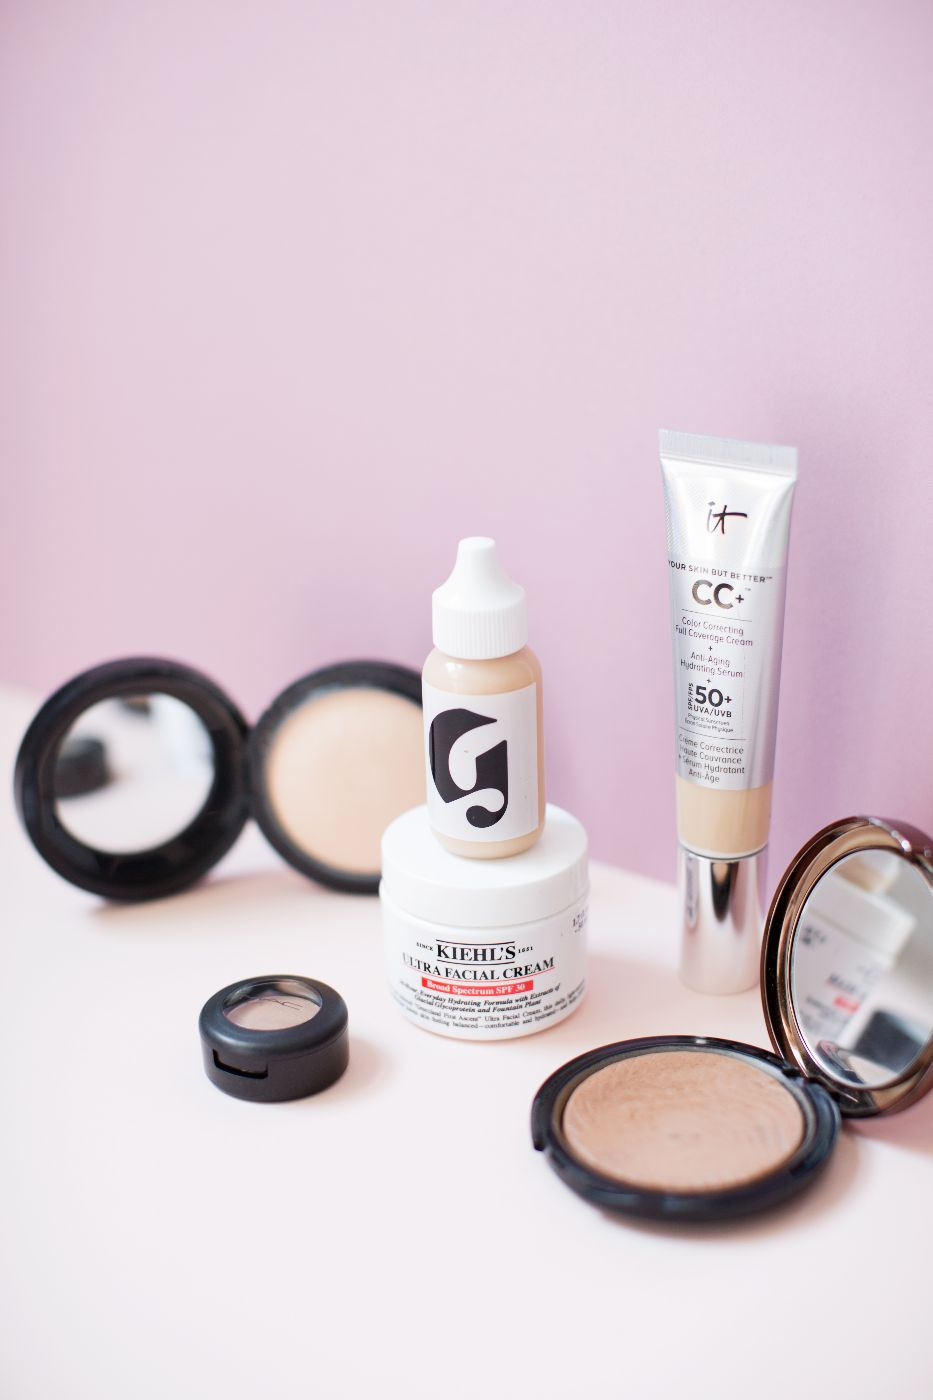 theannaedit-sumer-makeup-favourites-glossier-stella-mccartney-urban-decay-sweatproof-june-2017-6